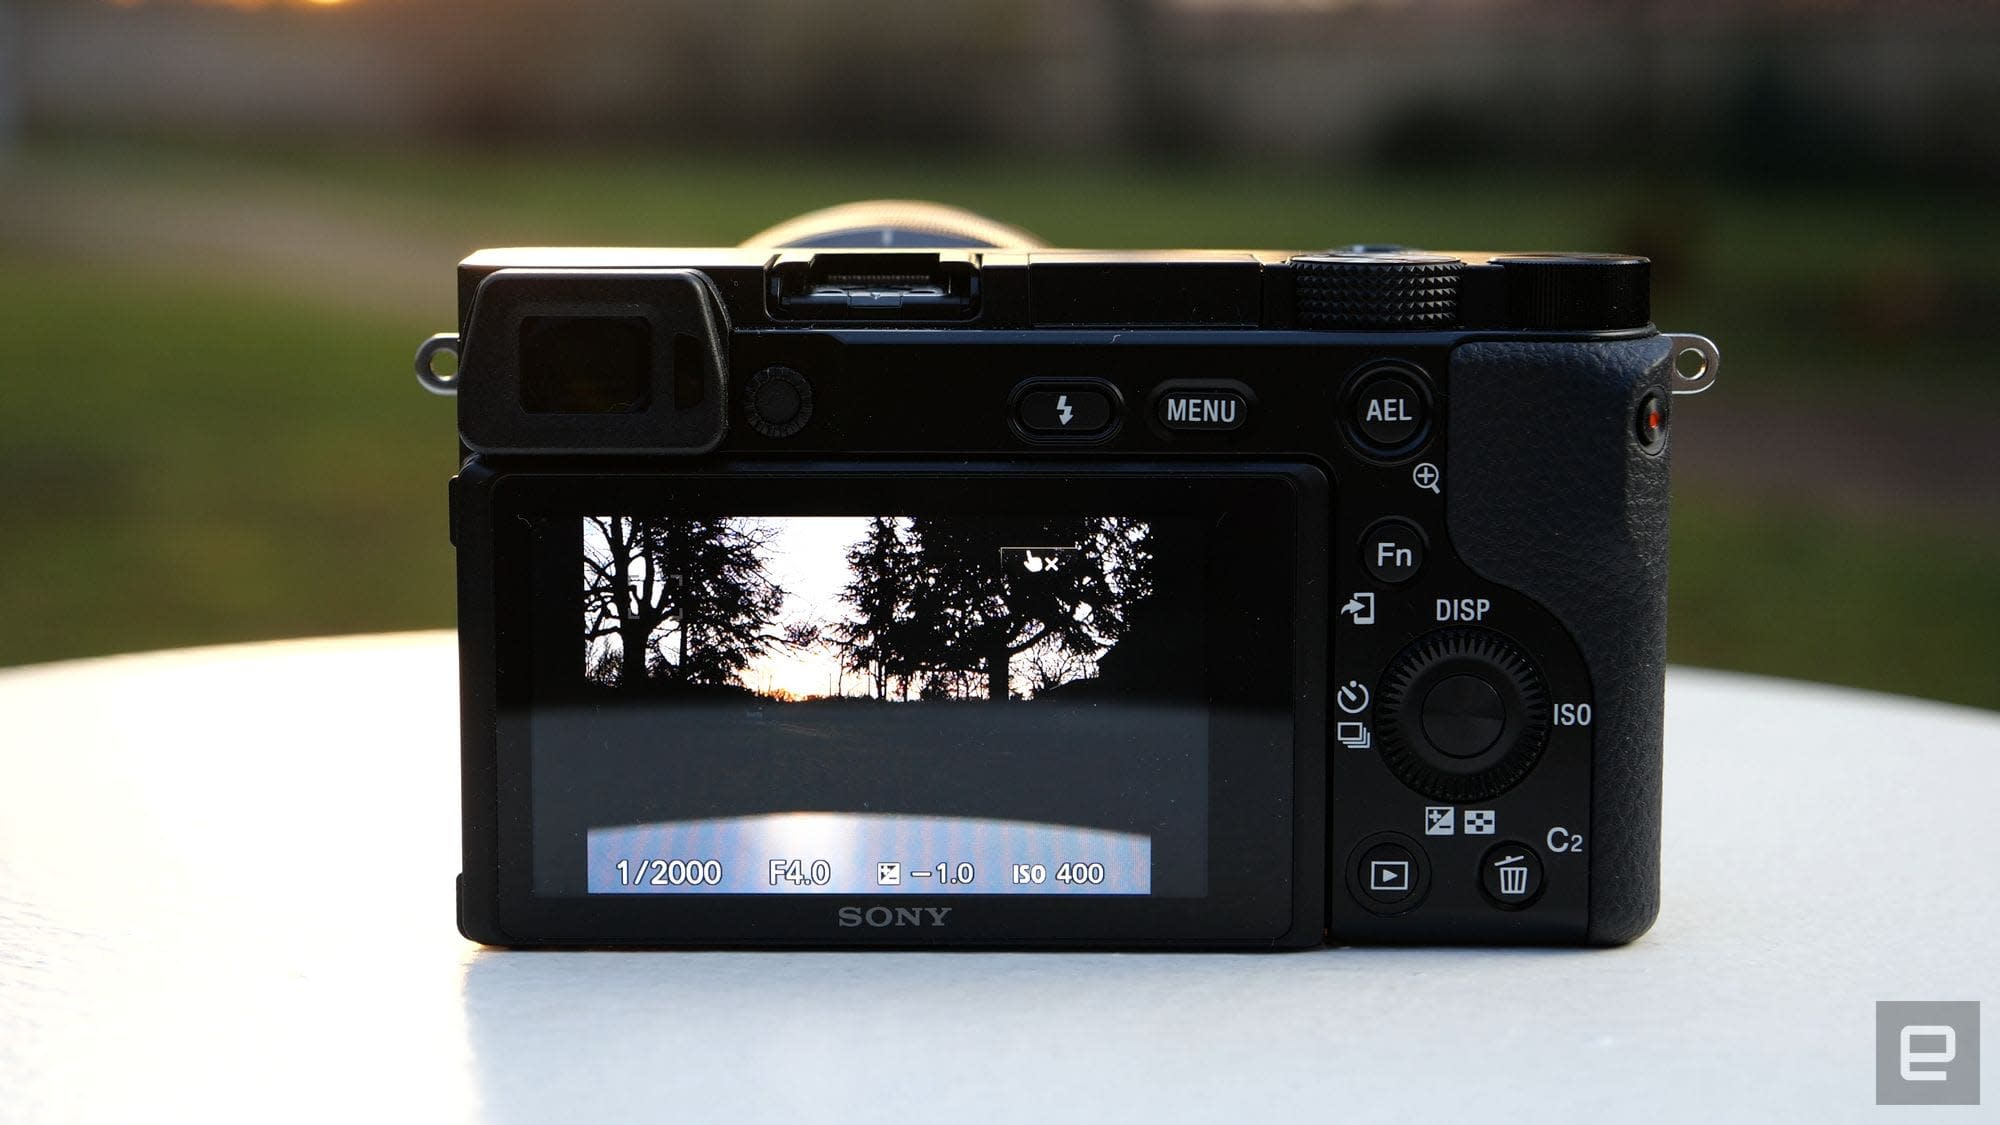 Sony A6100 mirrorless camera review